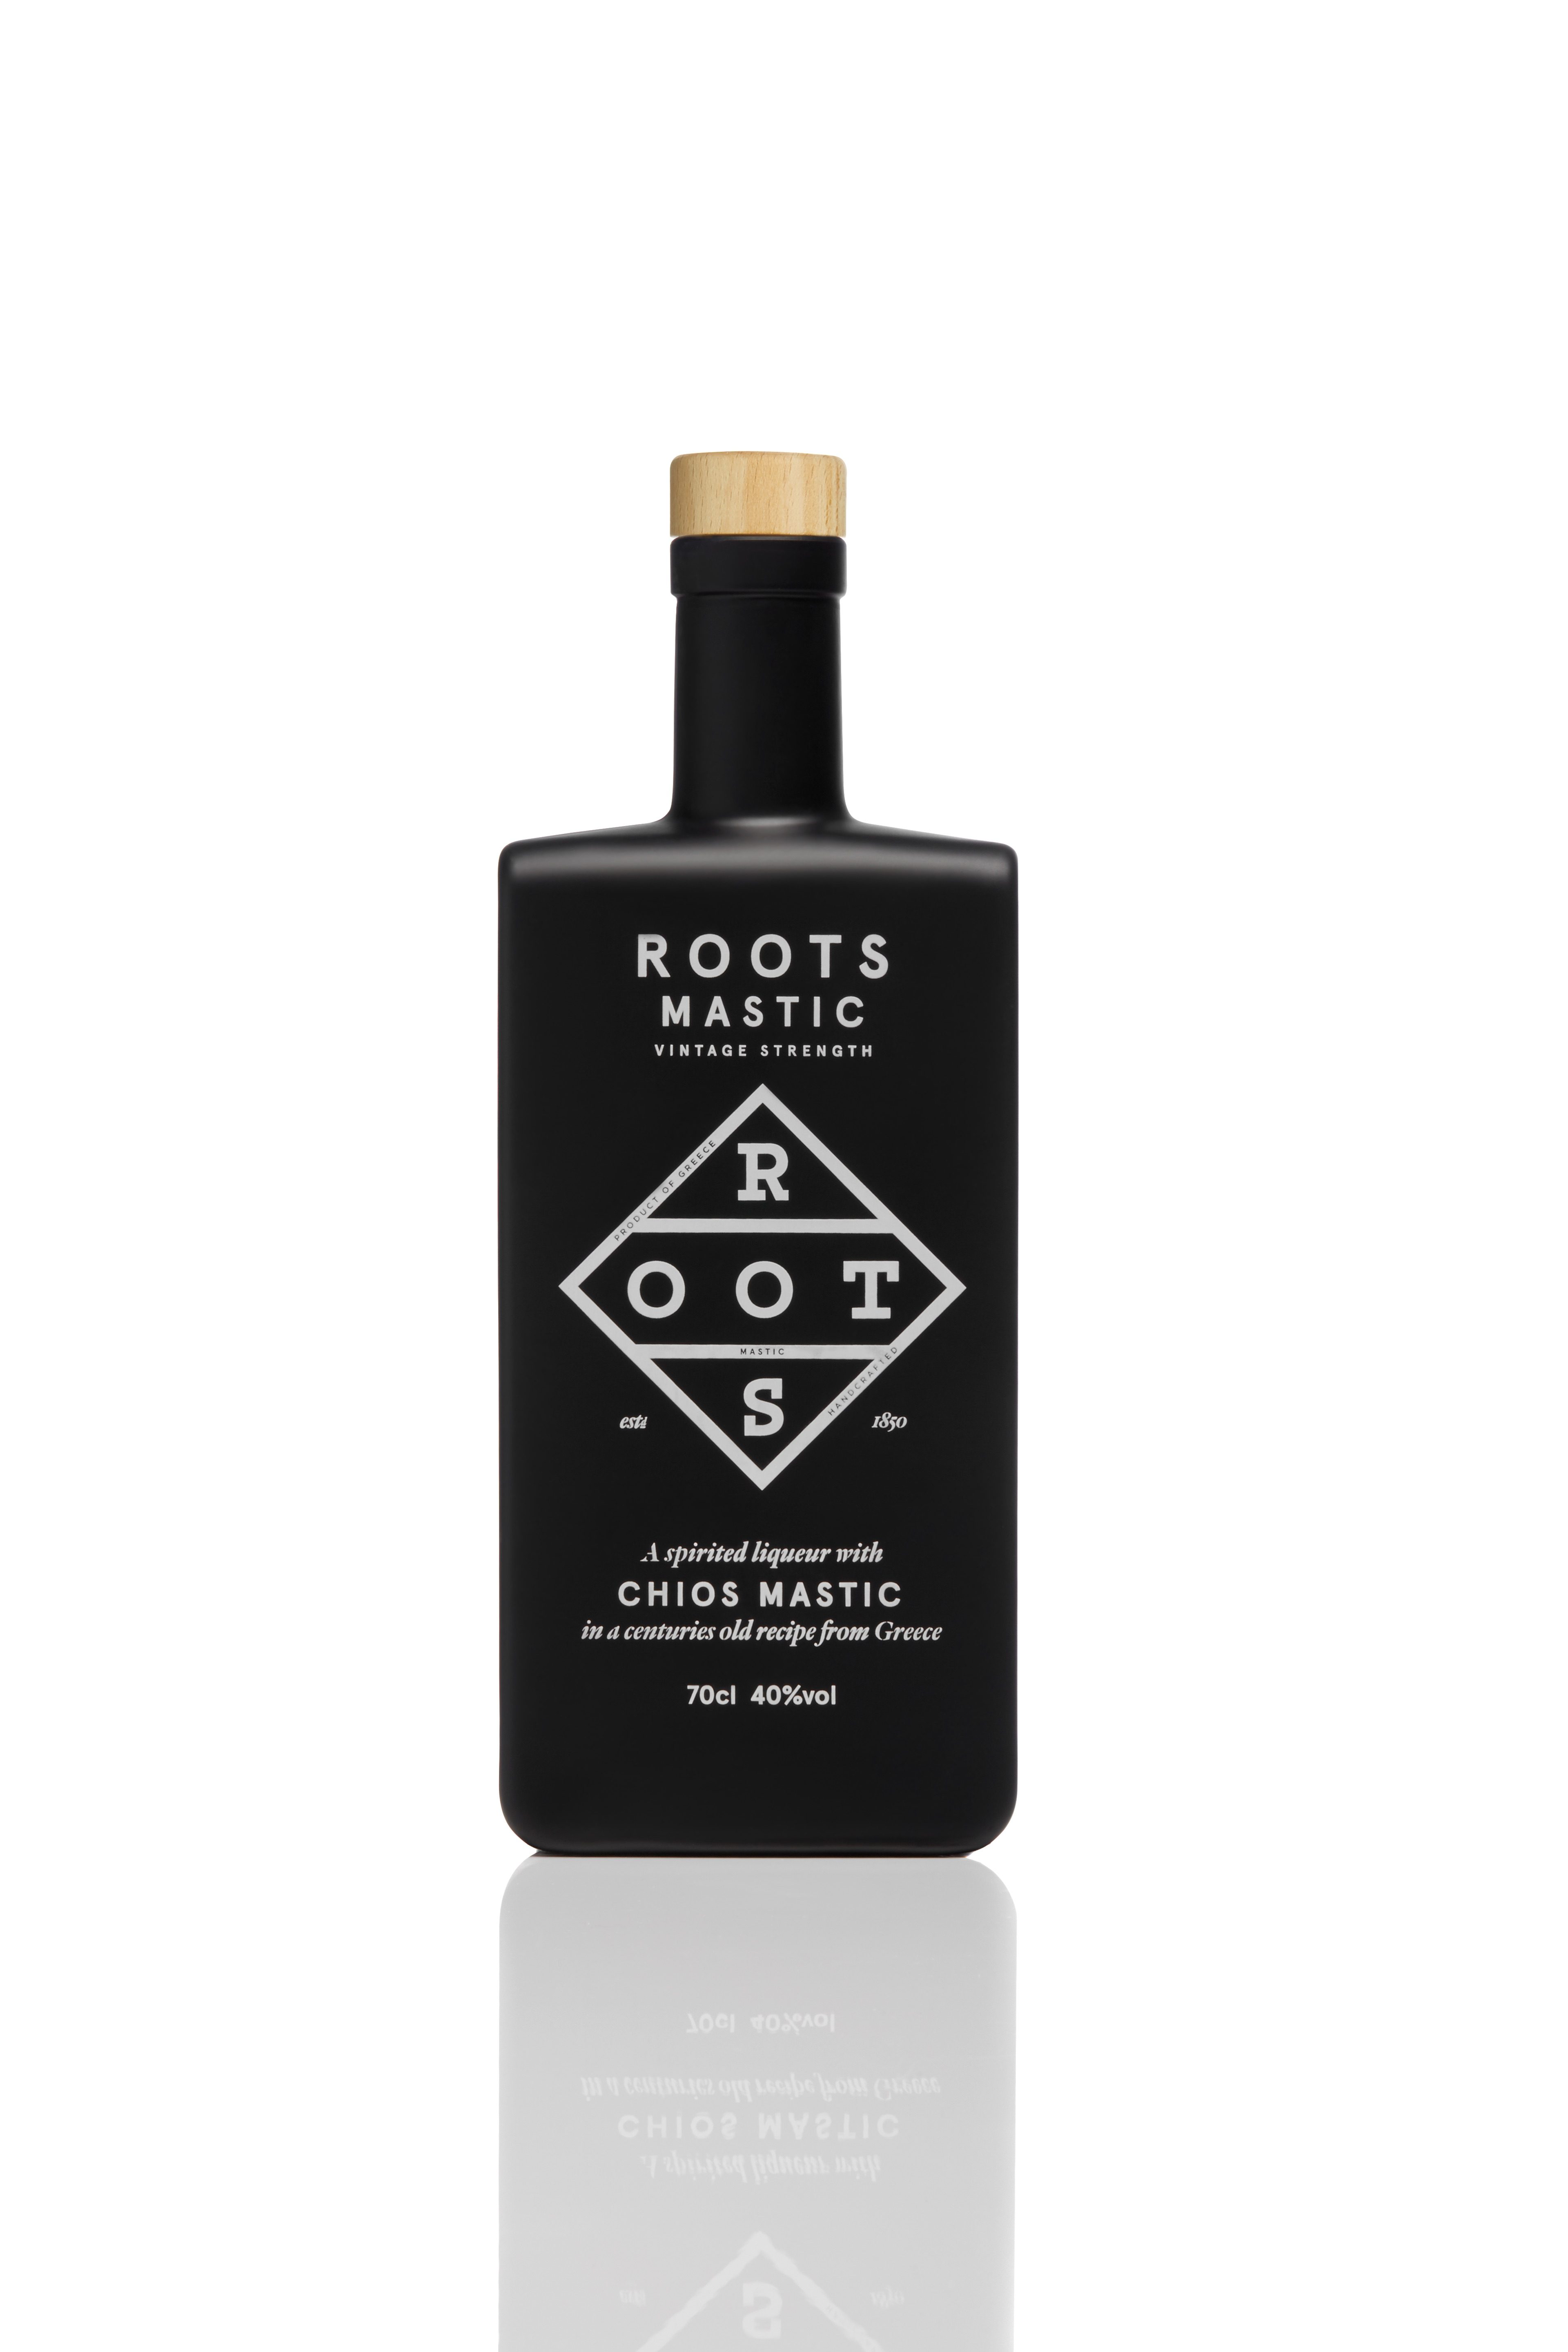 Roots Mastic Vintage Strength 40% 0,7 l